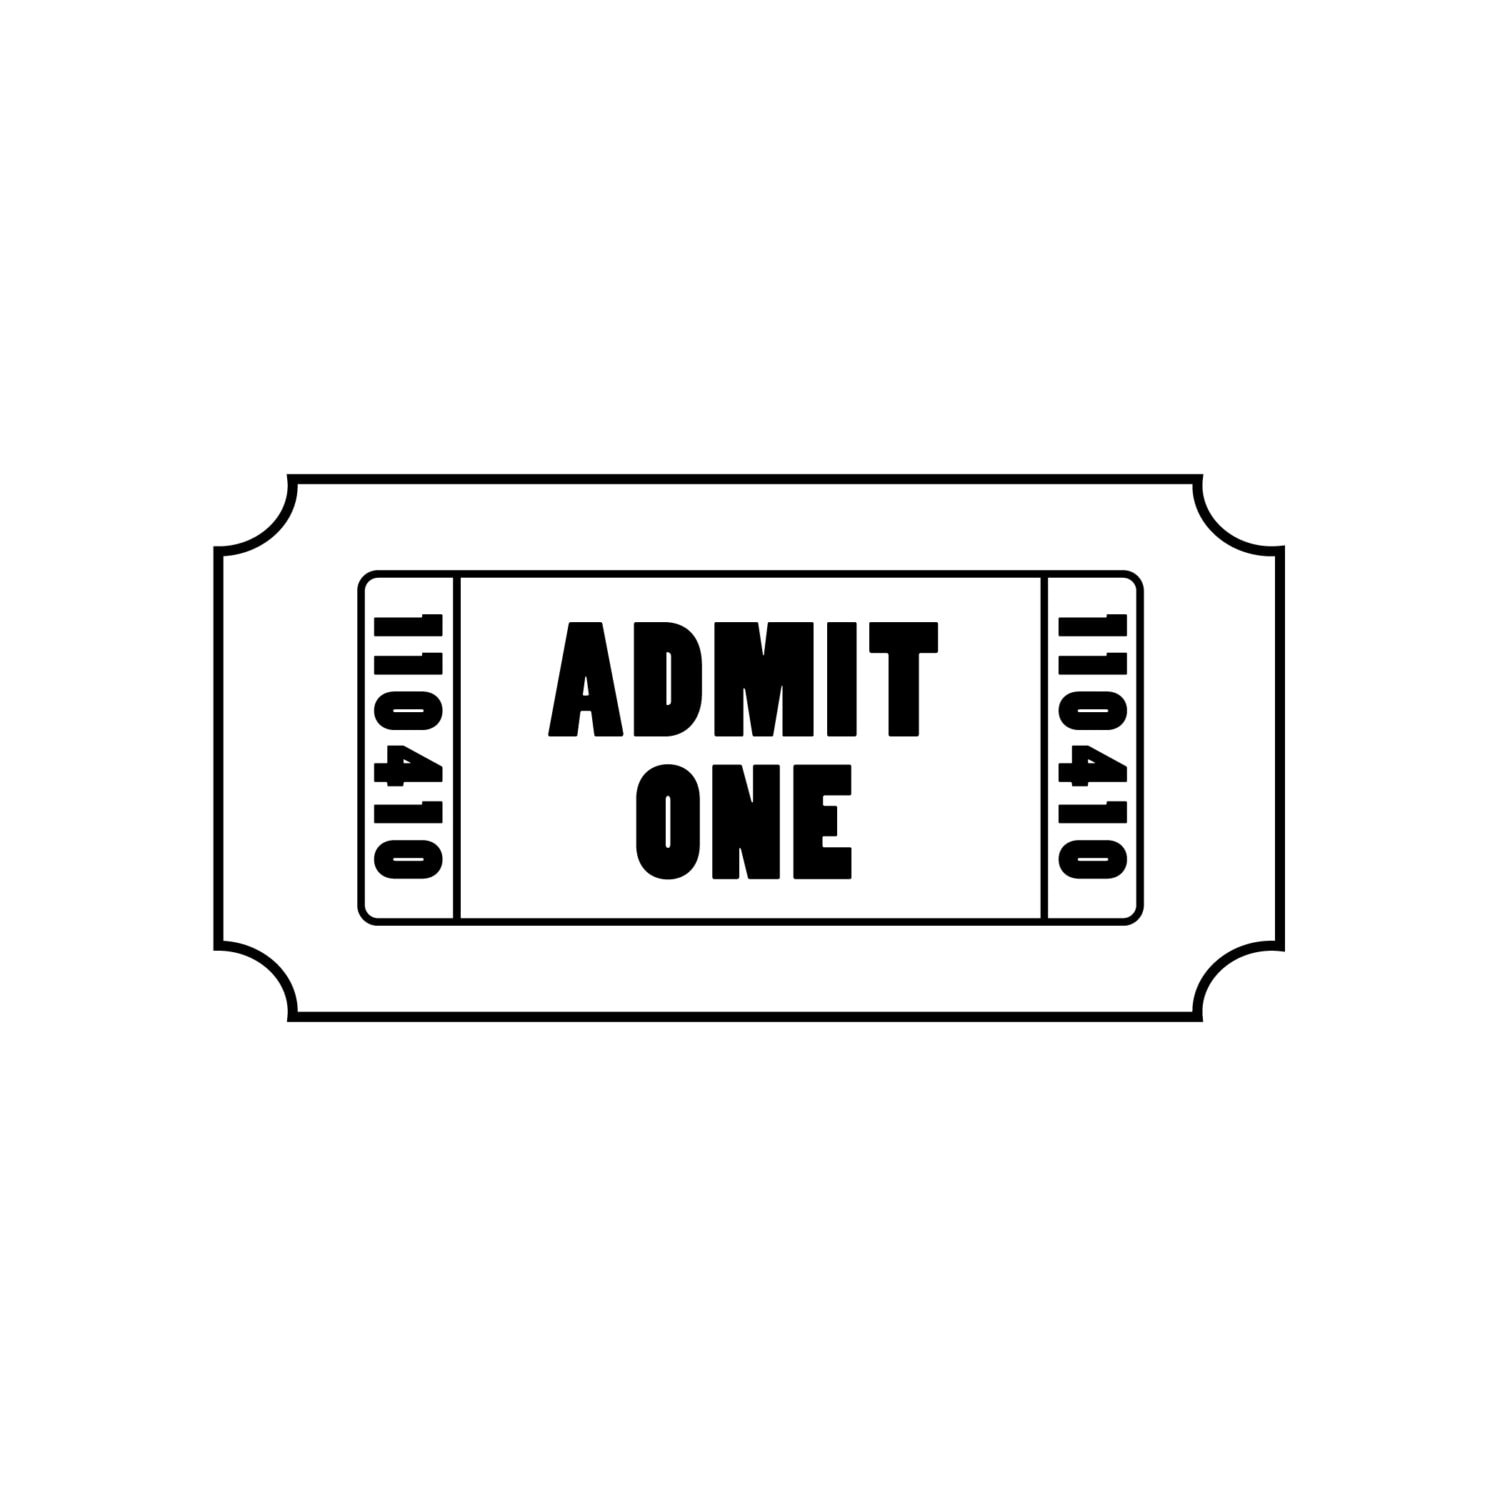 admit one ticket decal perfect for making ticket etsy